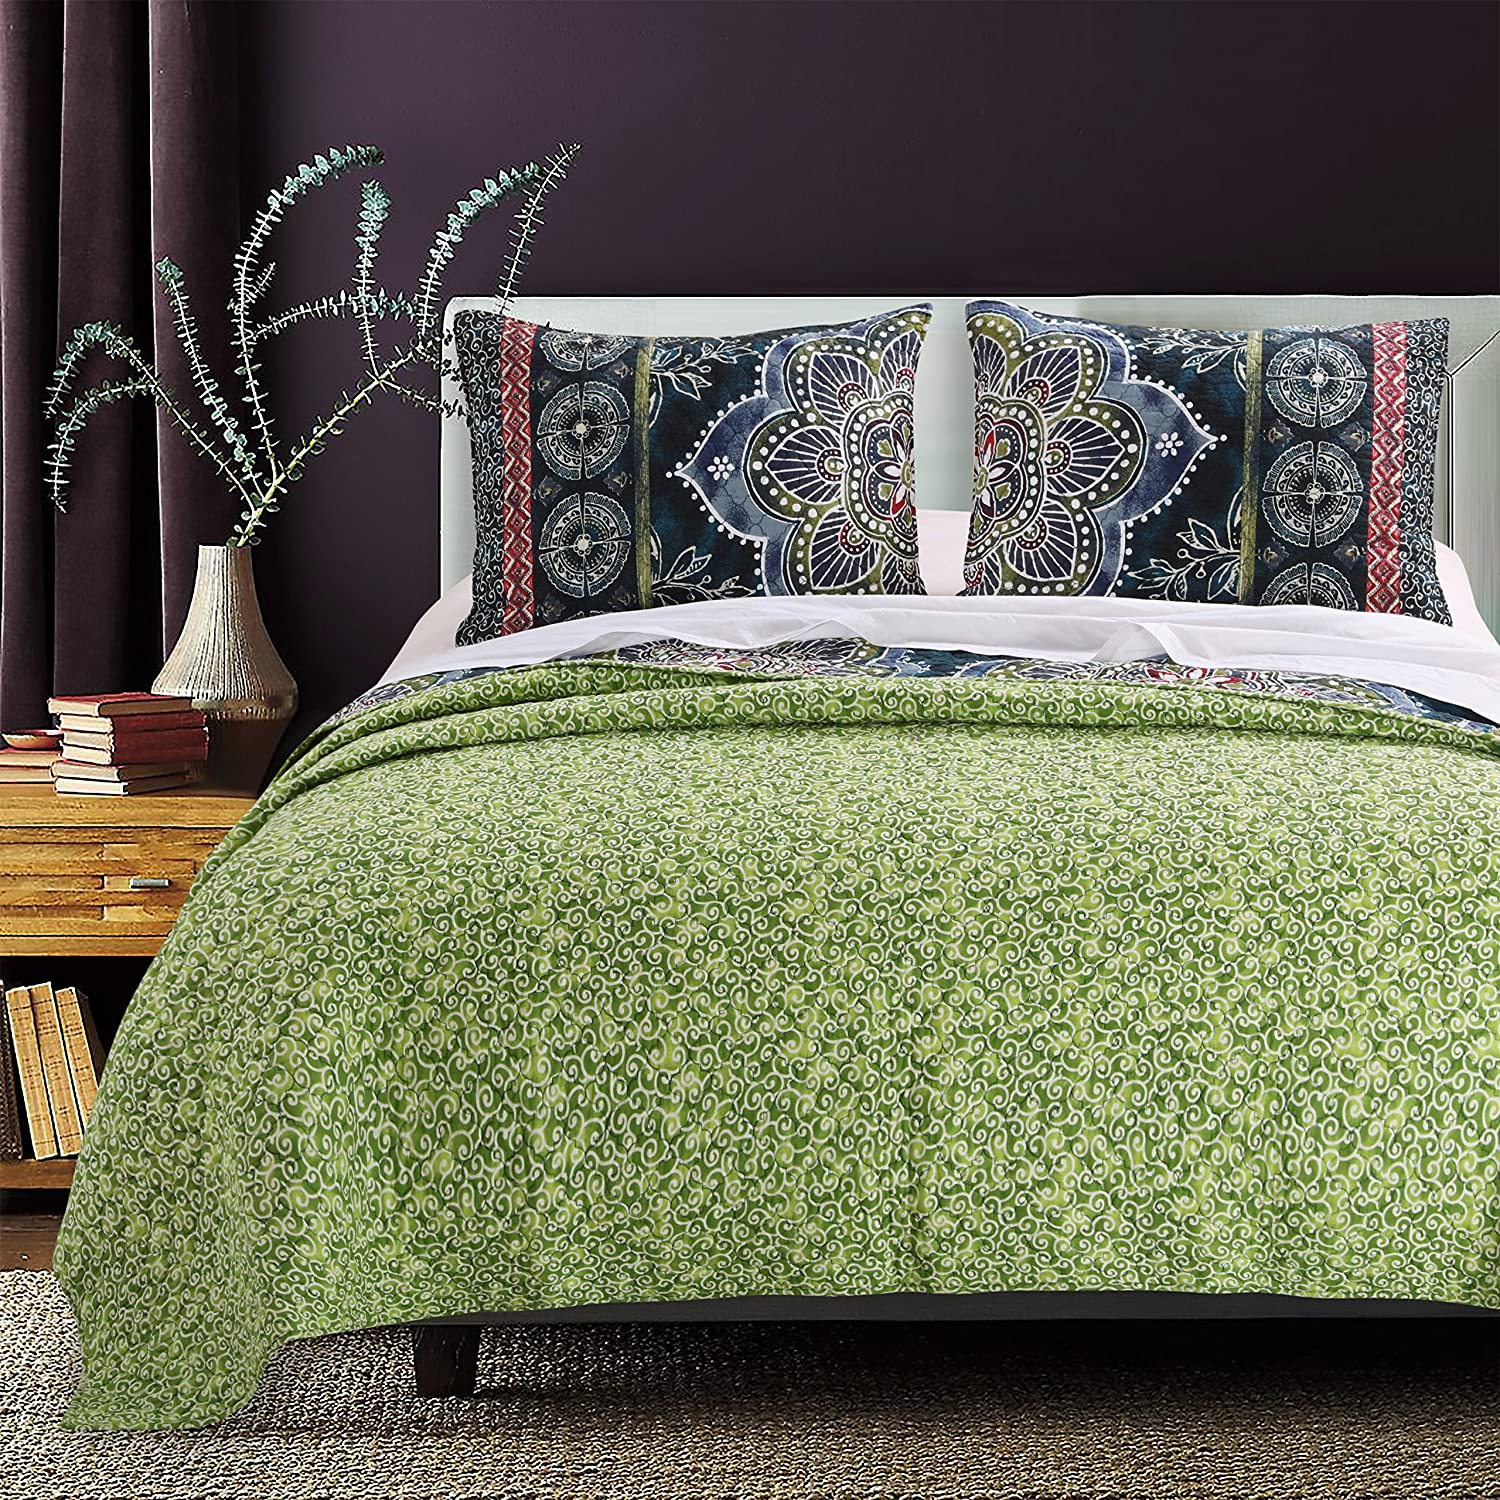 Kess InHouse Patternmuse Love Tangle Brown Green Watercolor 51 x 60 Wall Tapestry